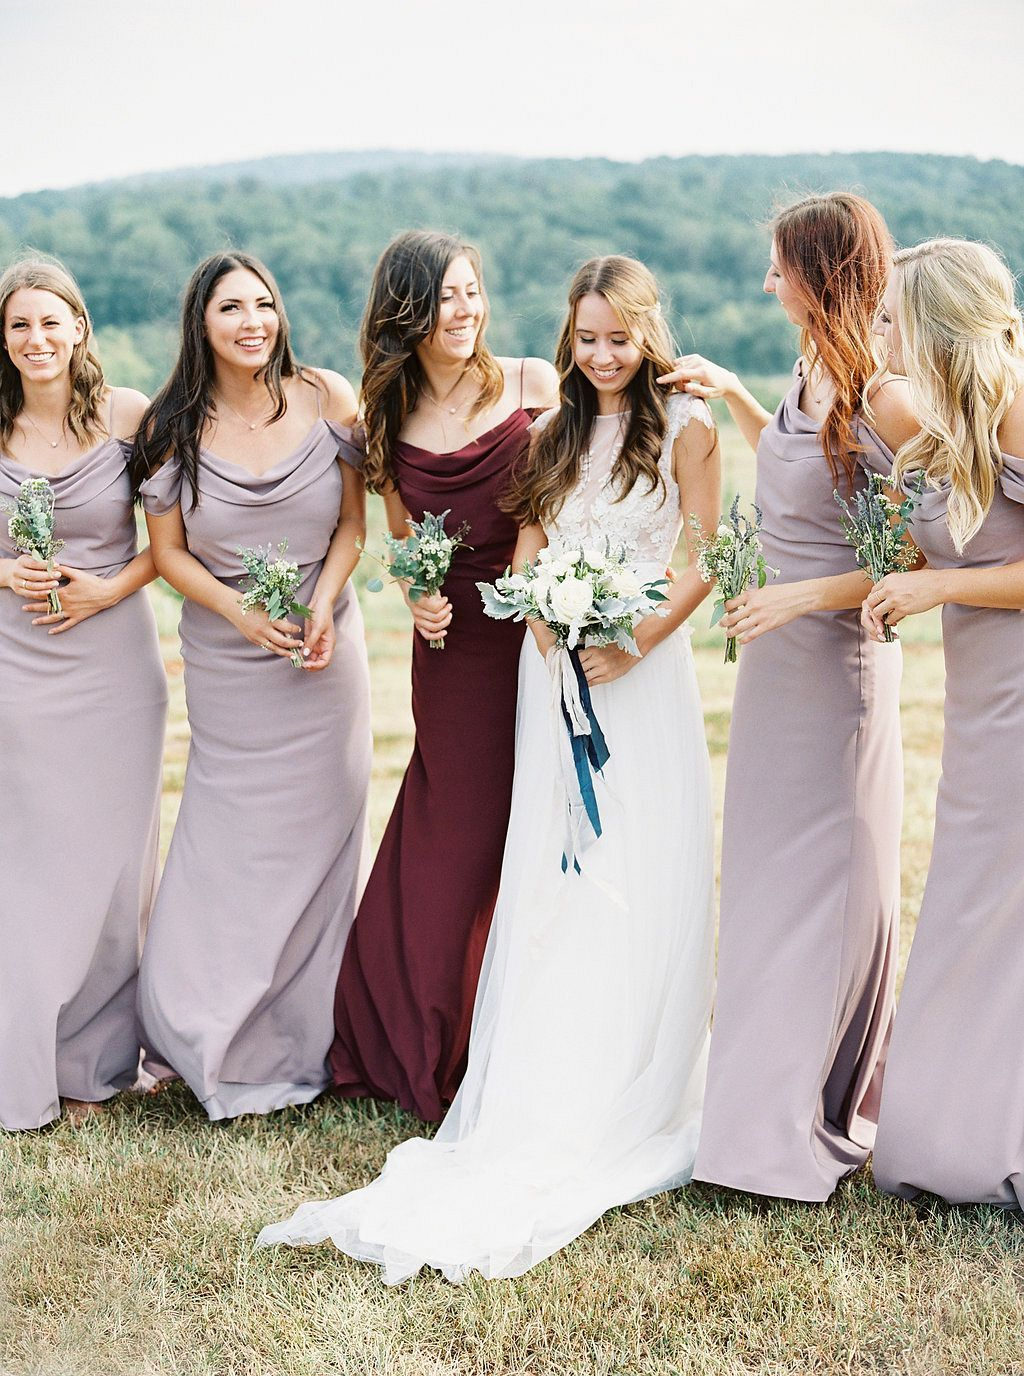 Mismatched bridesmaids beautiful color pallete blending berry mismatched bridesmaids beautiful color pallete blending berry hues mauve taupe and burgundy bridesmaids ombrellifo Choice Image